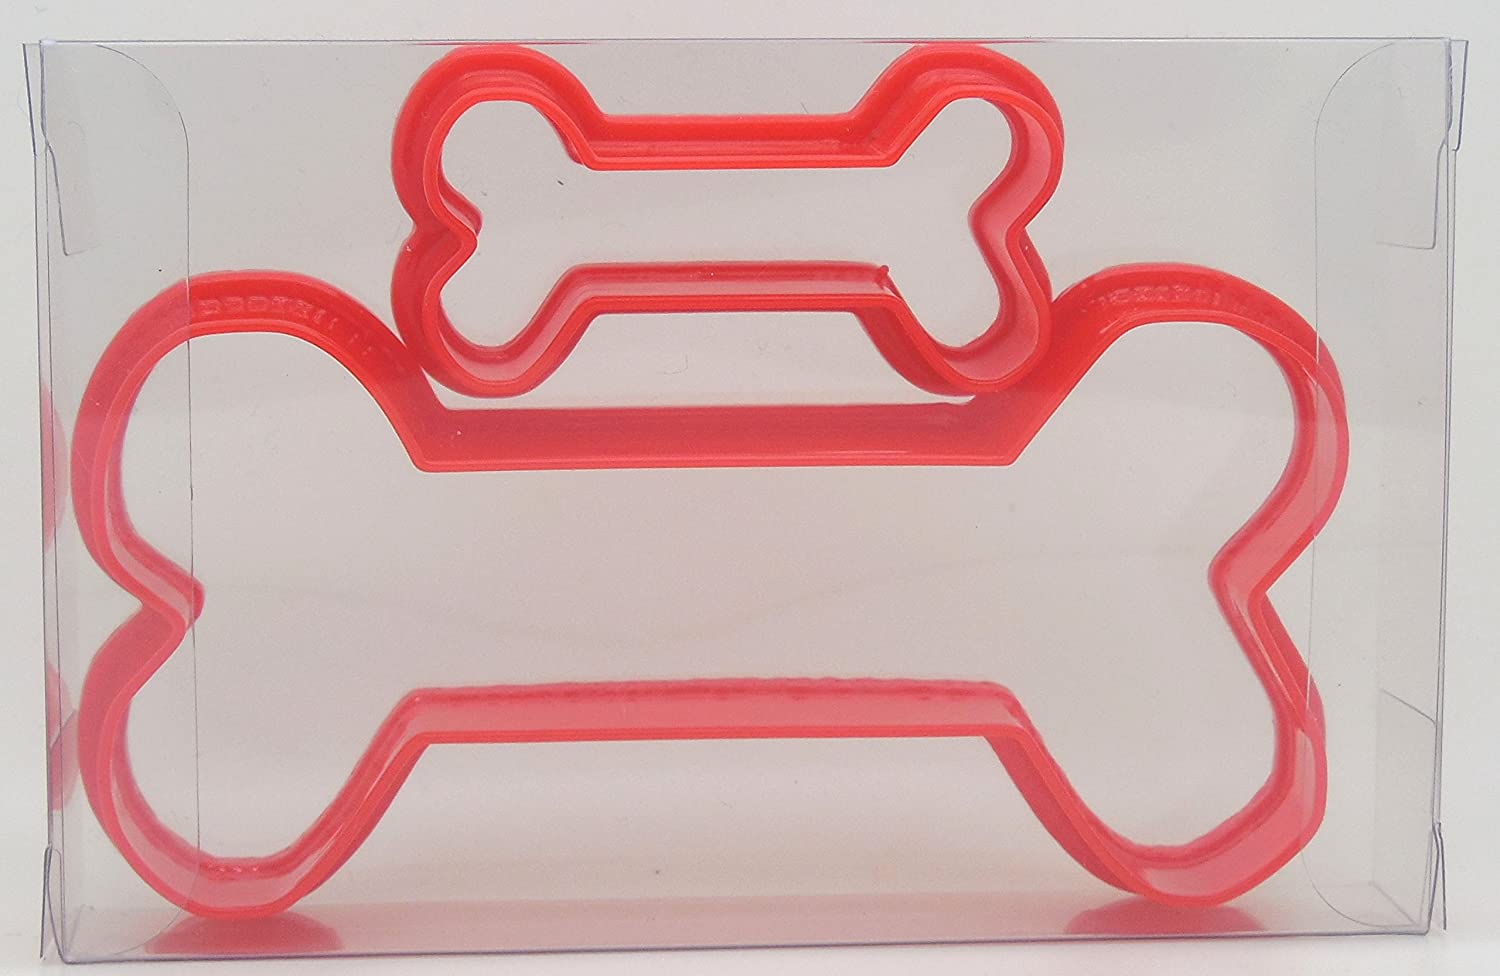 Dog Bone Set of 2 Cookie Cutter, Biscuit, Pastry, Fondant Cutter Goggly